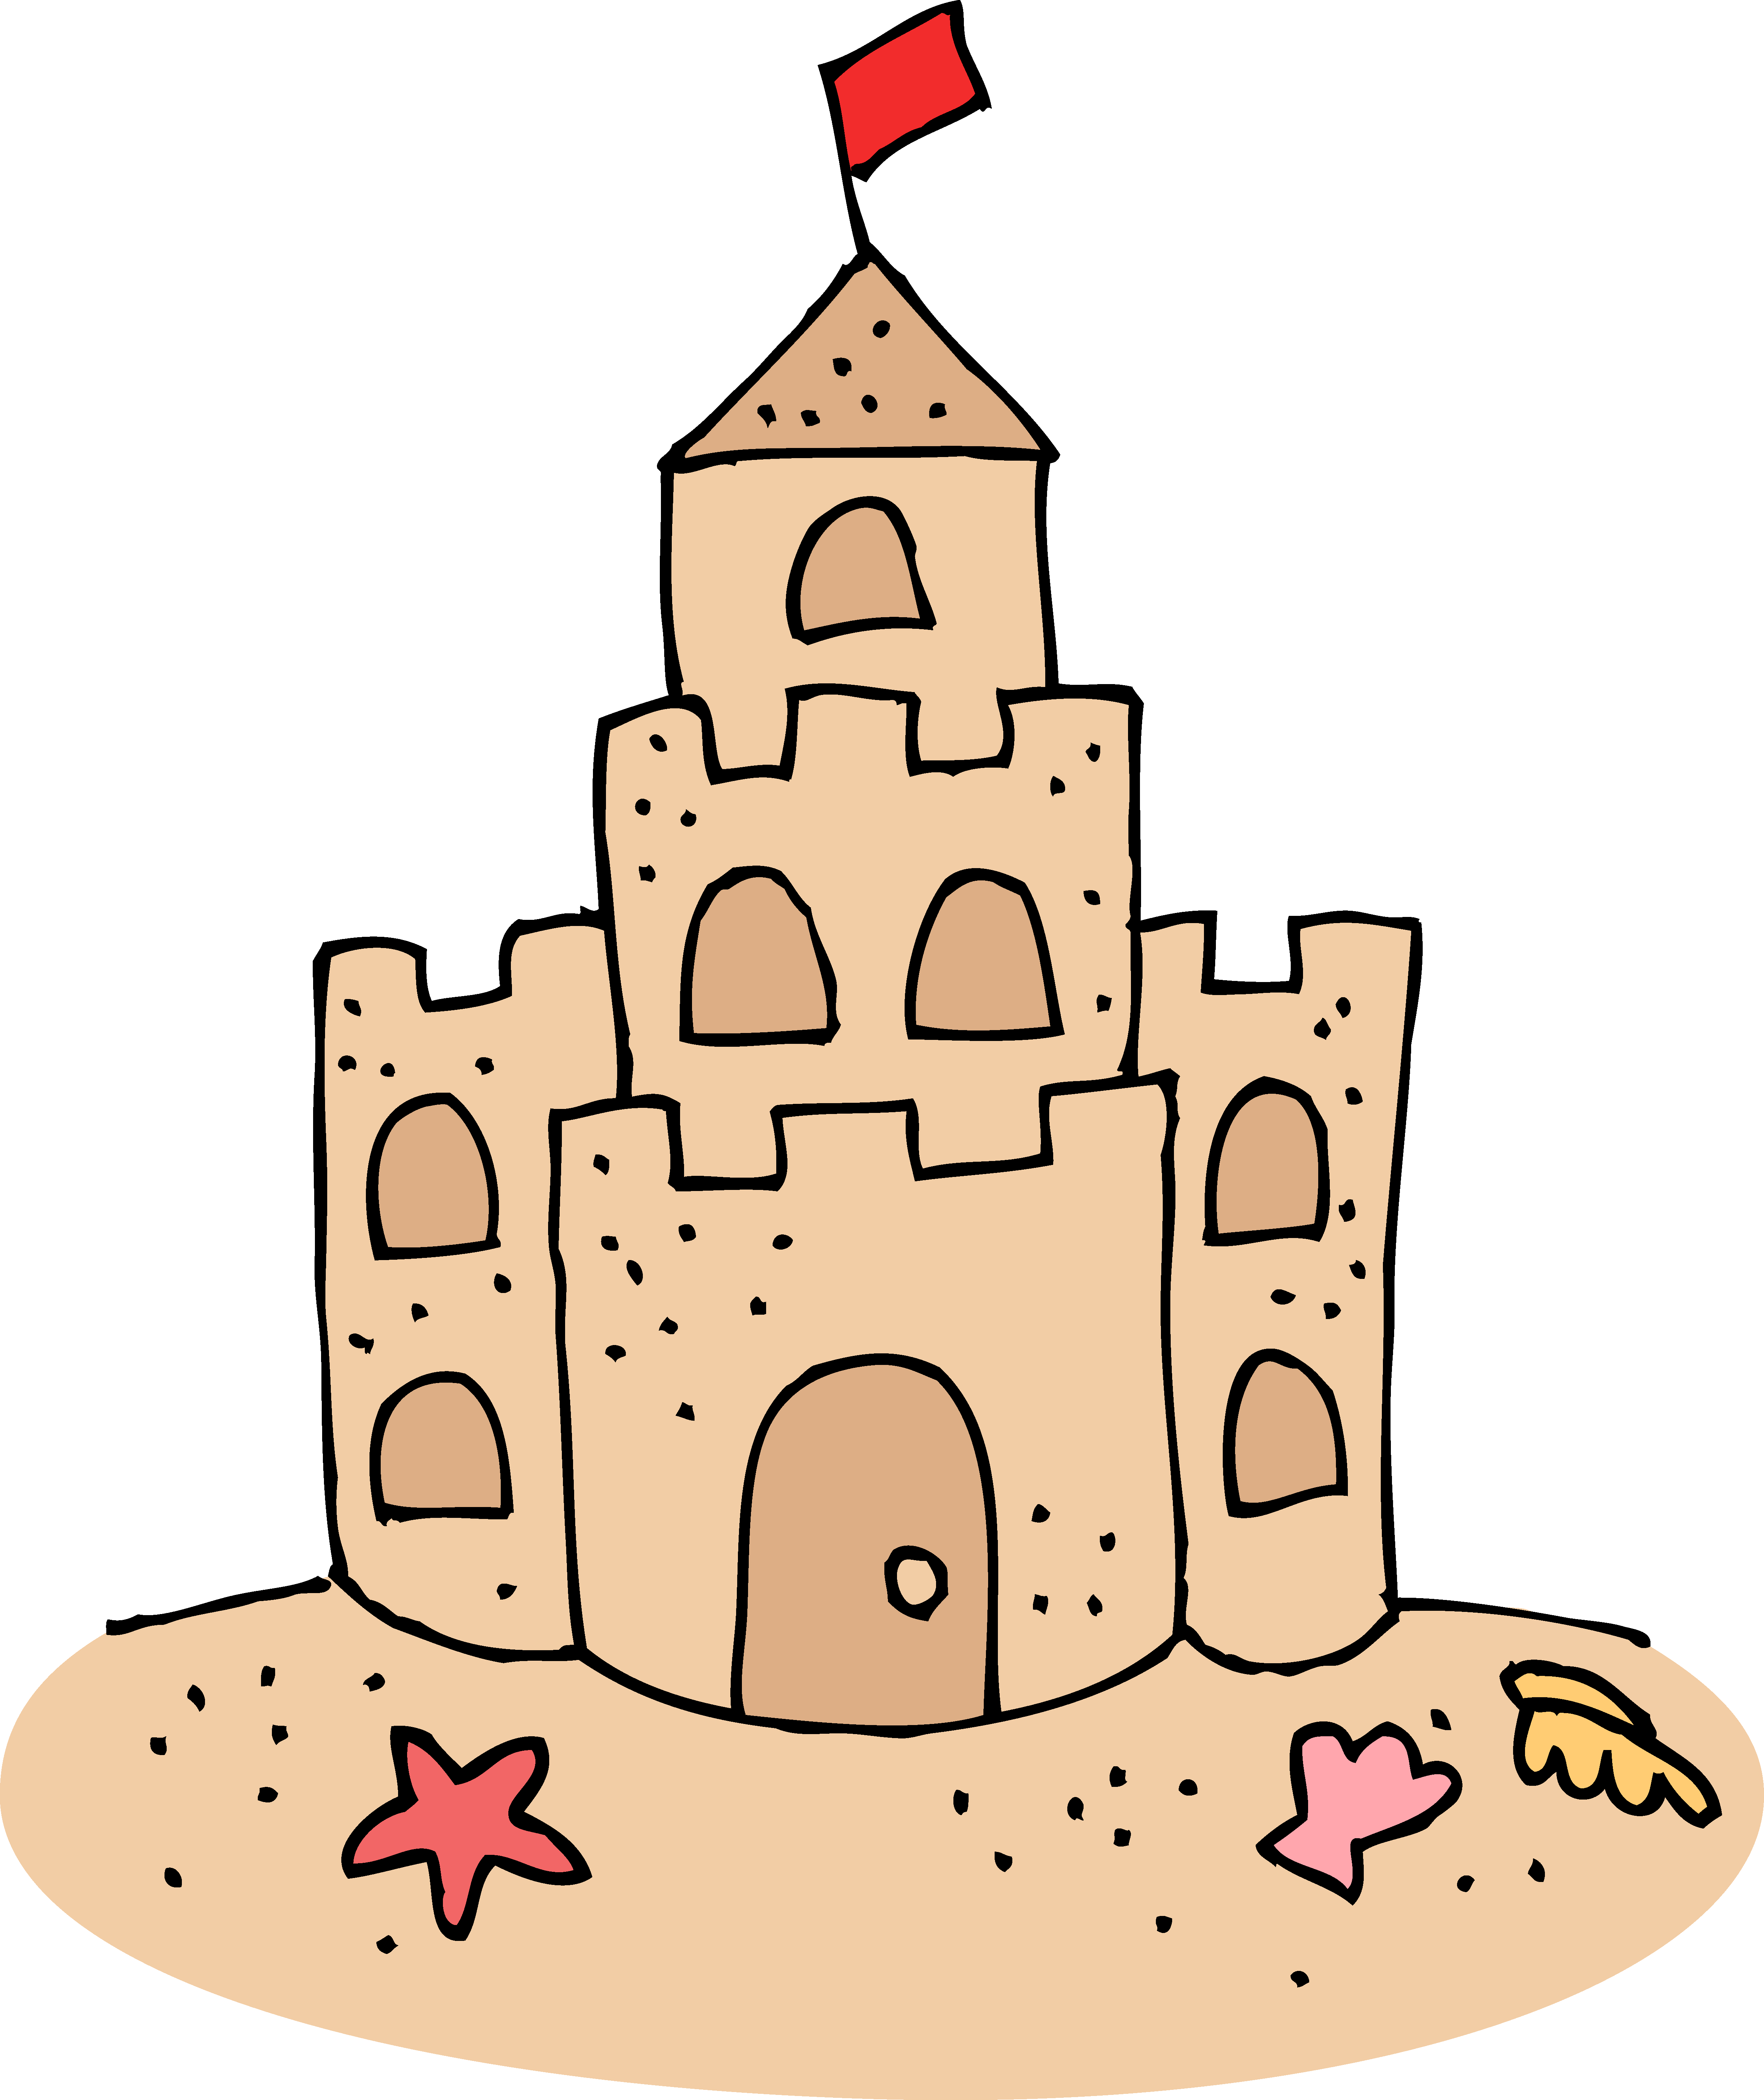 Sand Castle clipart #2, Download drawings